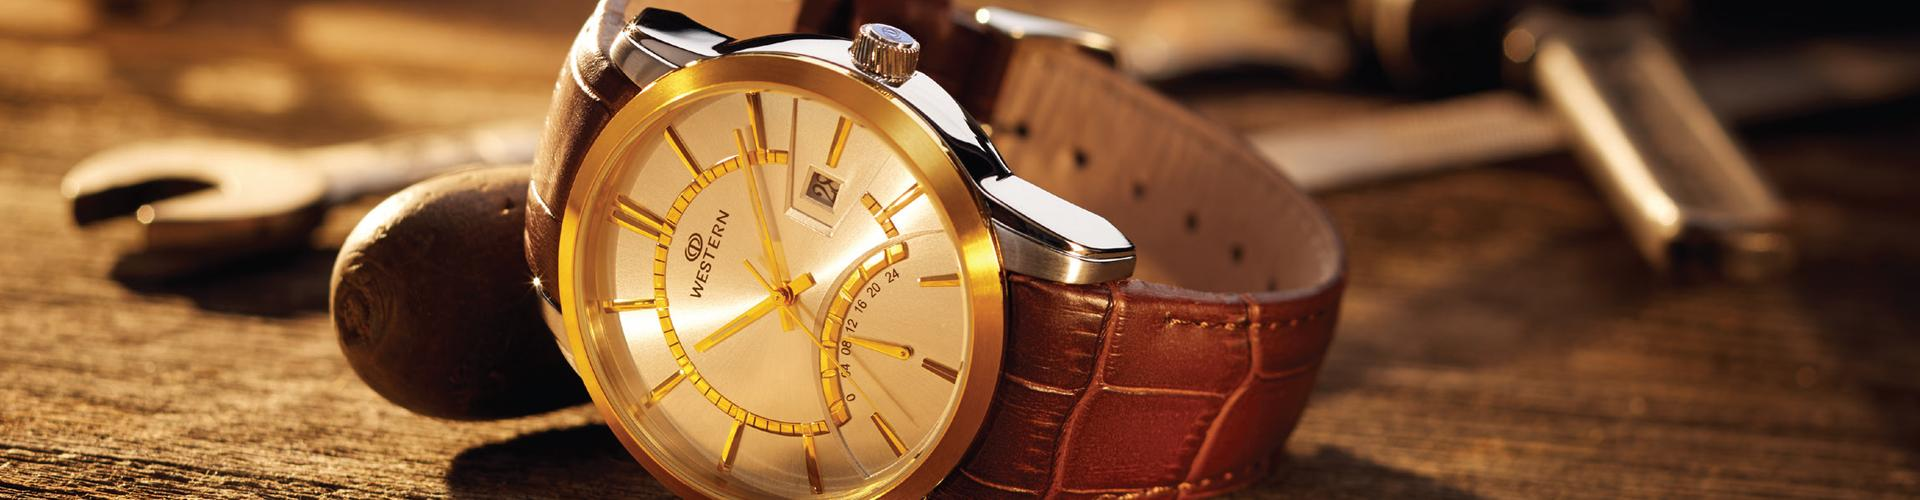 Wrist Watches Says All About Your Personality!